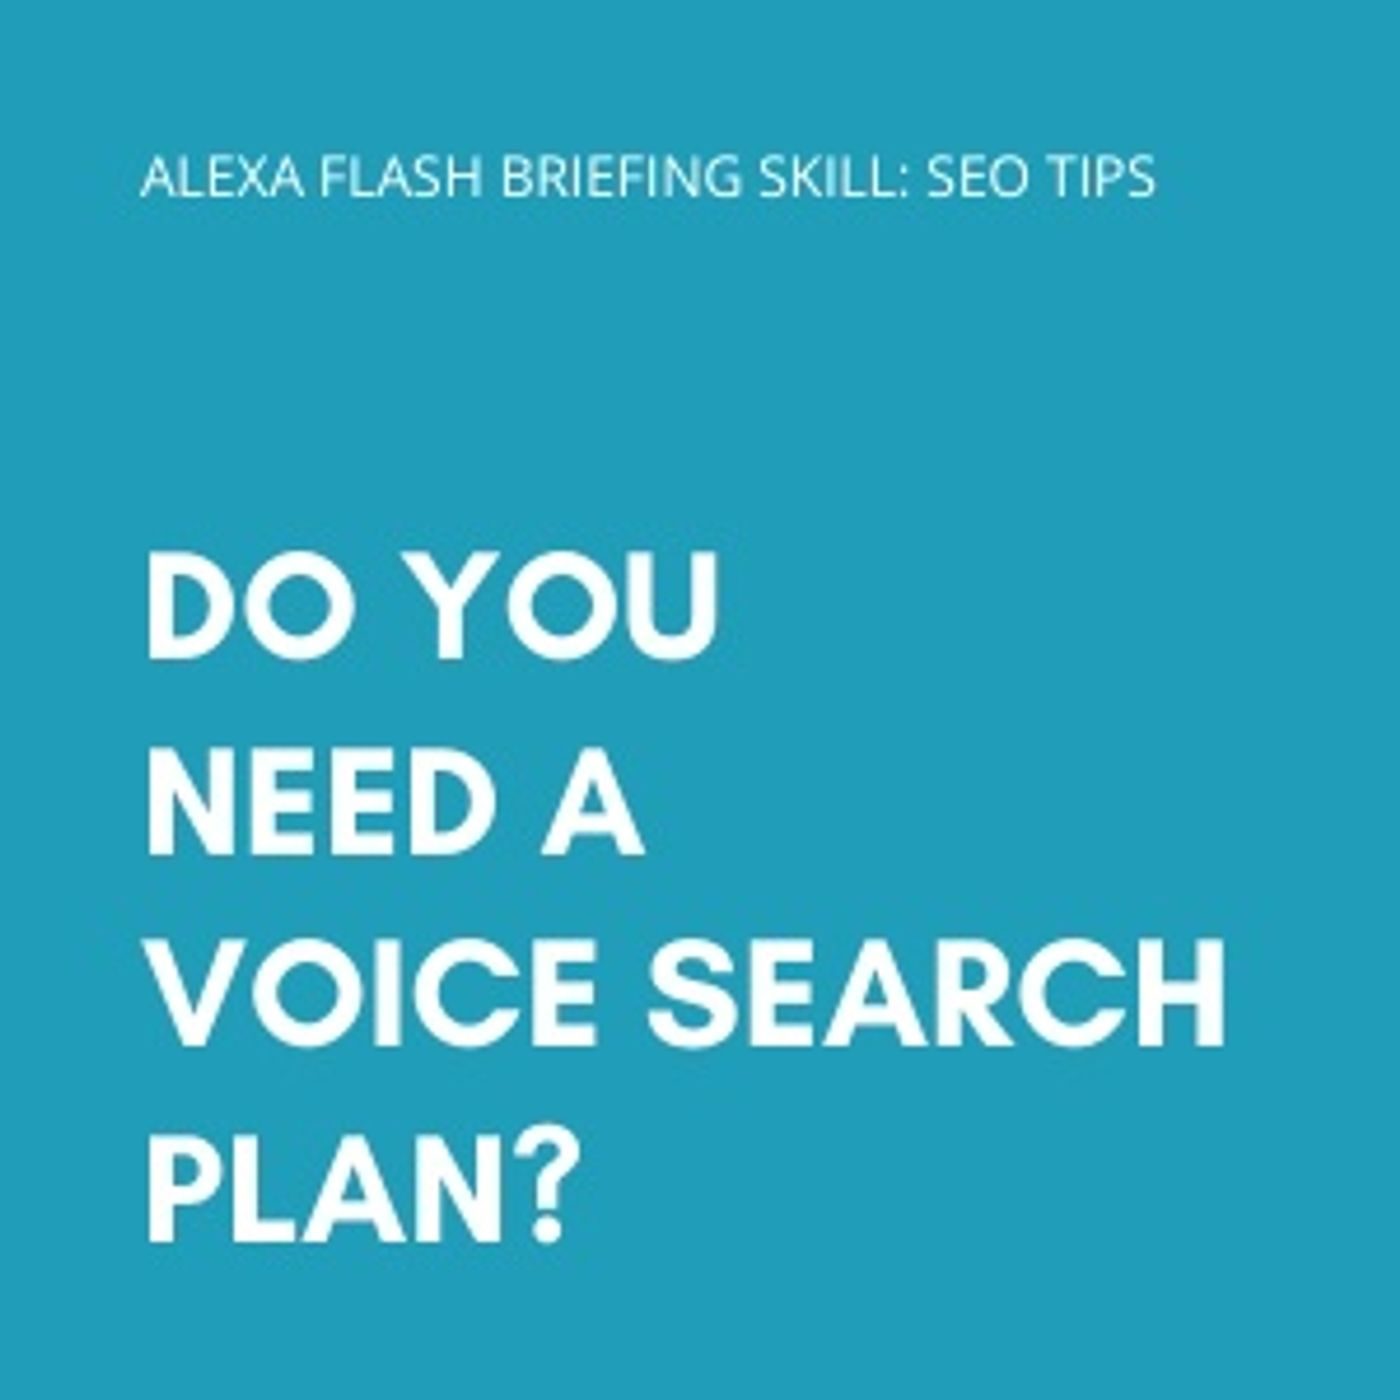 Do you need a voice search plan?